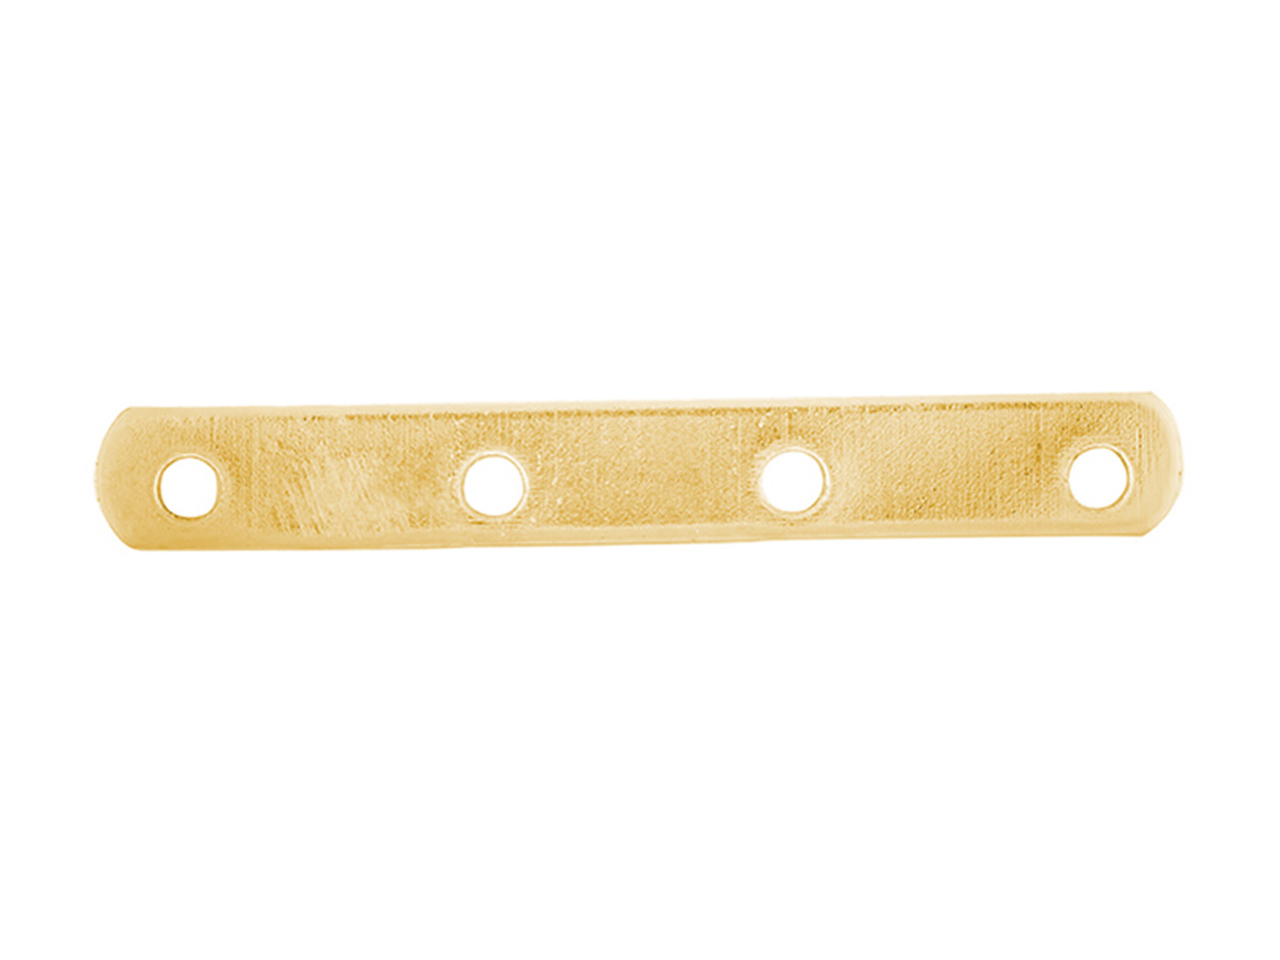 Intercalaire barrette 4 trous 18 mm, Or jaune 18k, n° 4